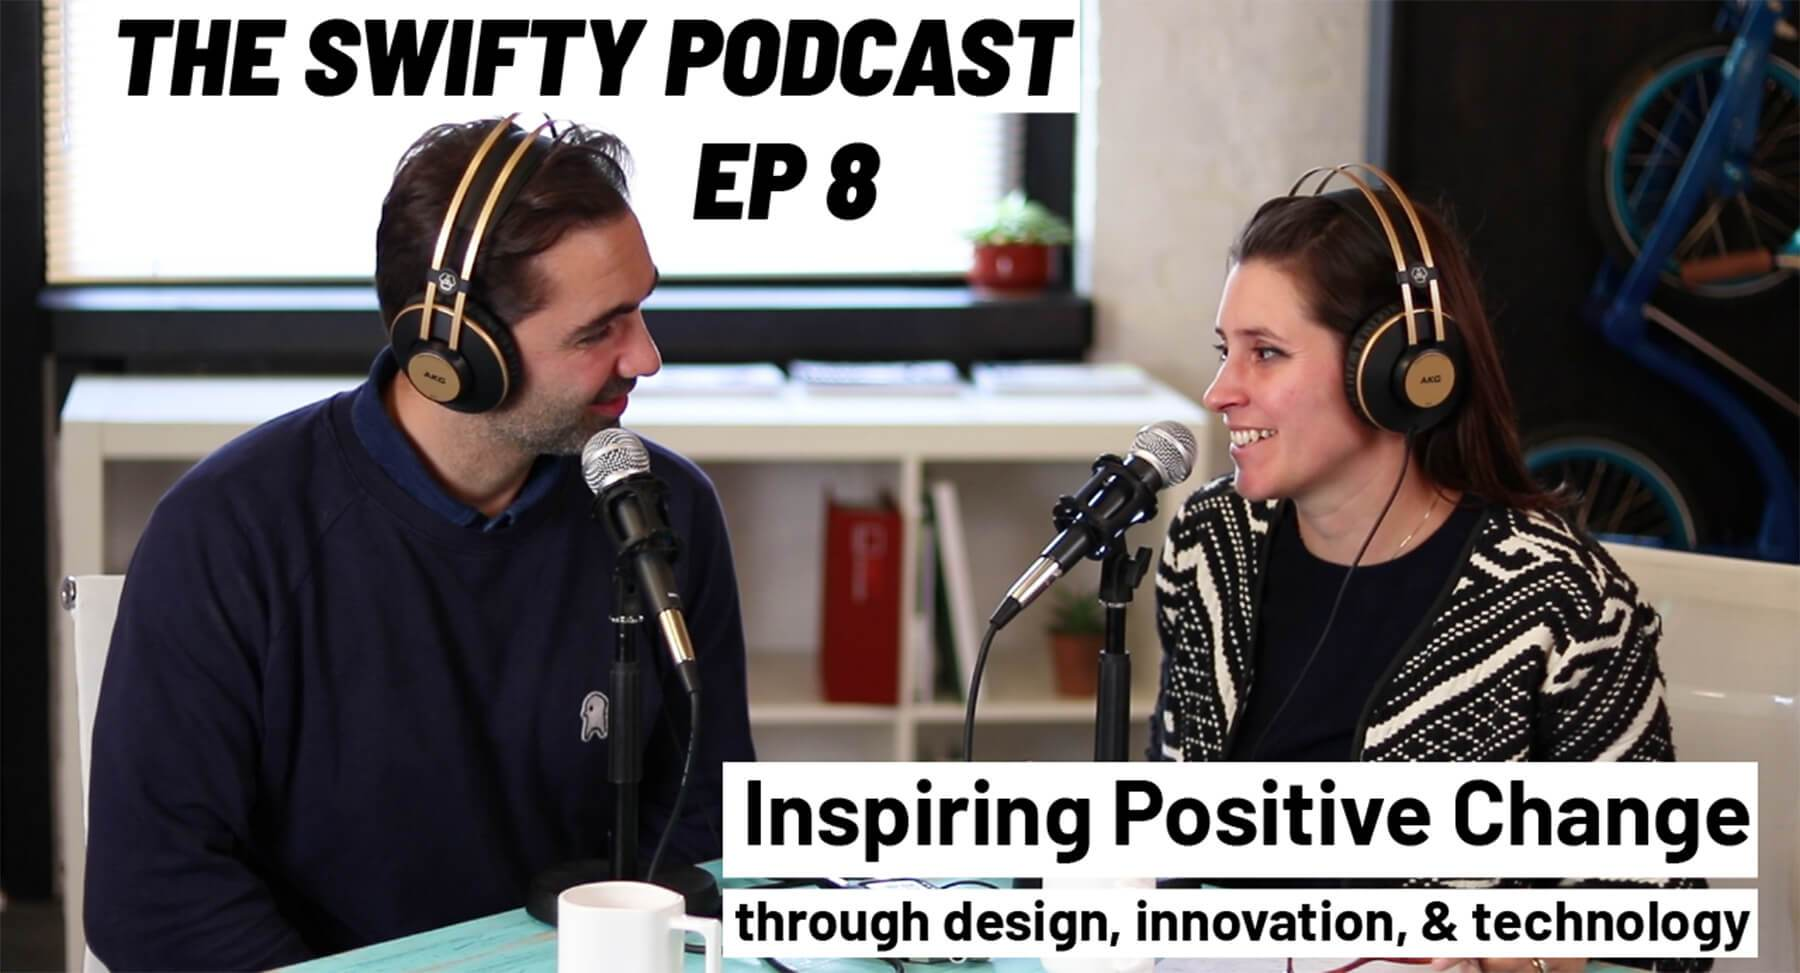 positive podcast, design podcast